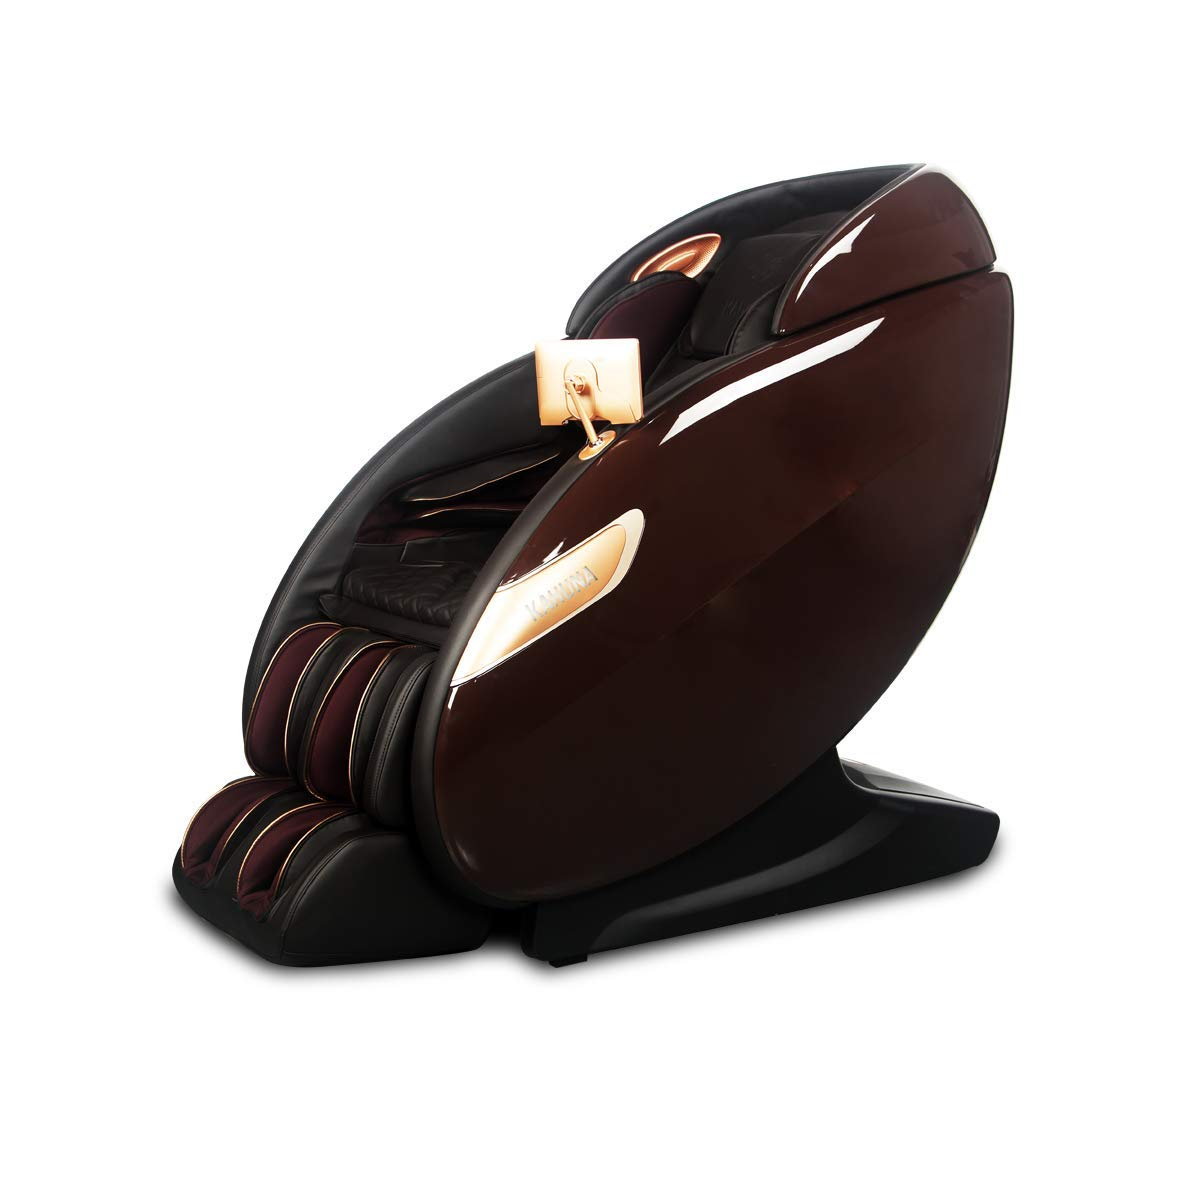 [NEW2021] Kahuna Massage Chair LM-7500 Brown - Design inspired by Modern futuristic architecture styles : Beauty